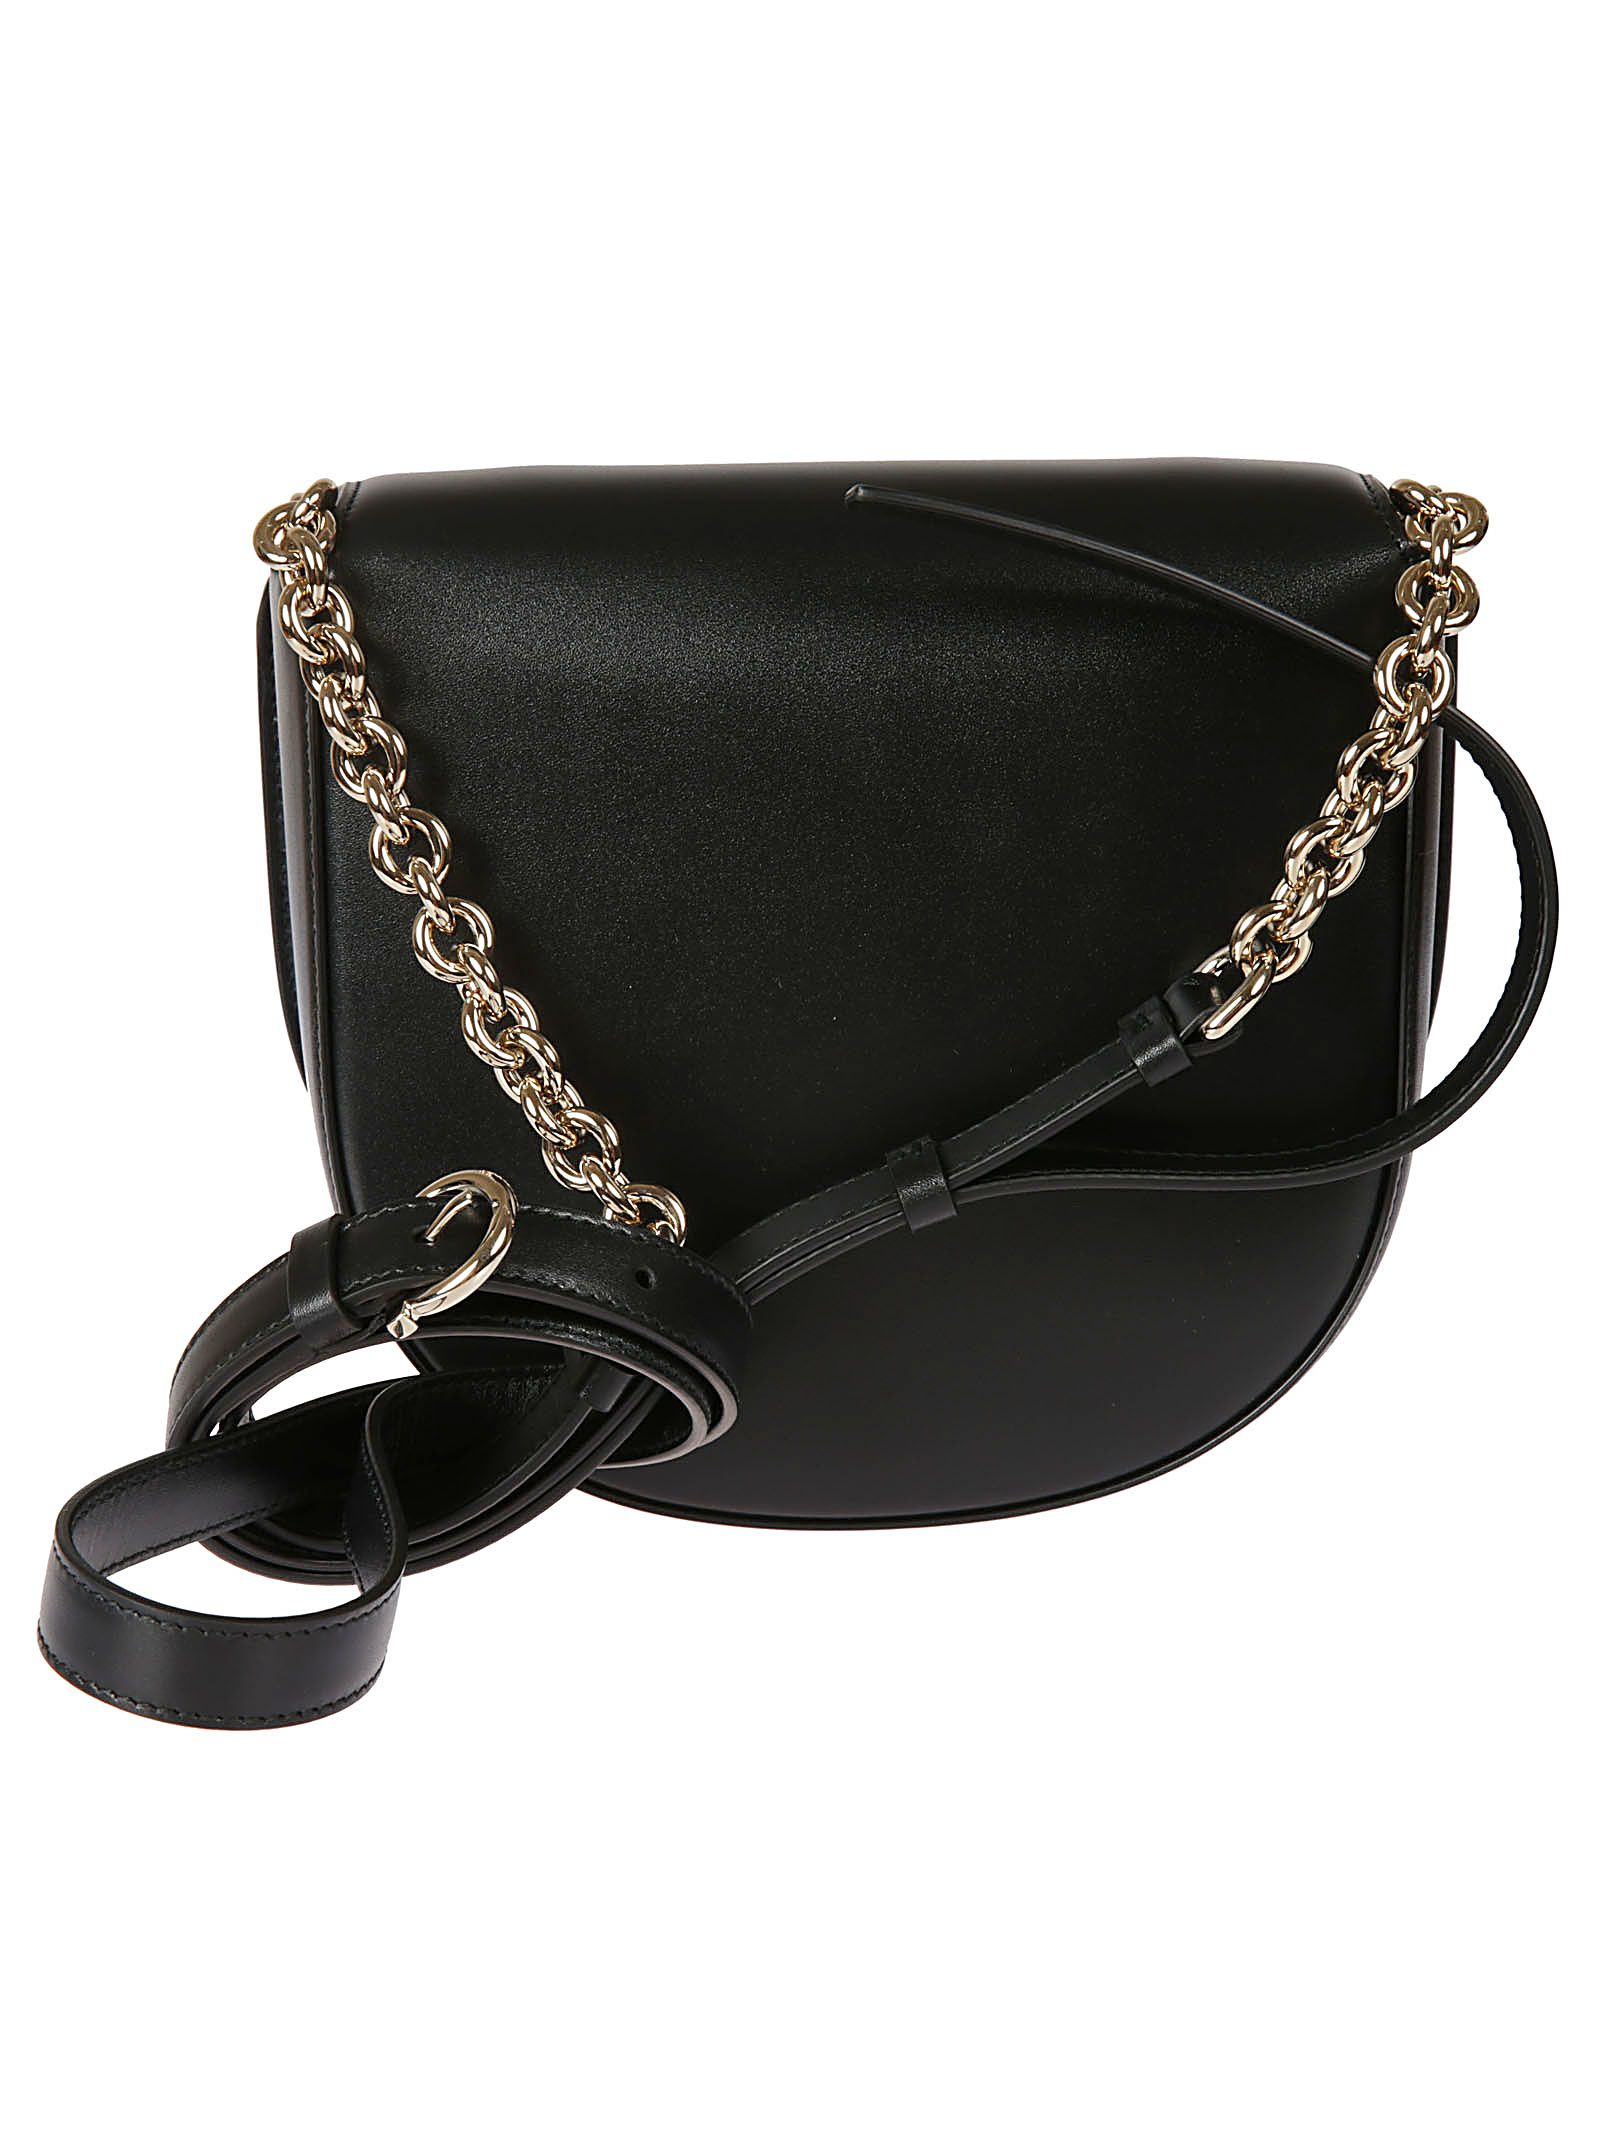 ... Salvatore Ferragamo Vela Crossbody Bag - Black ... c863946243141